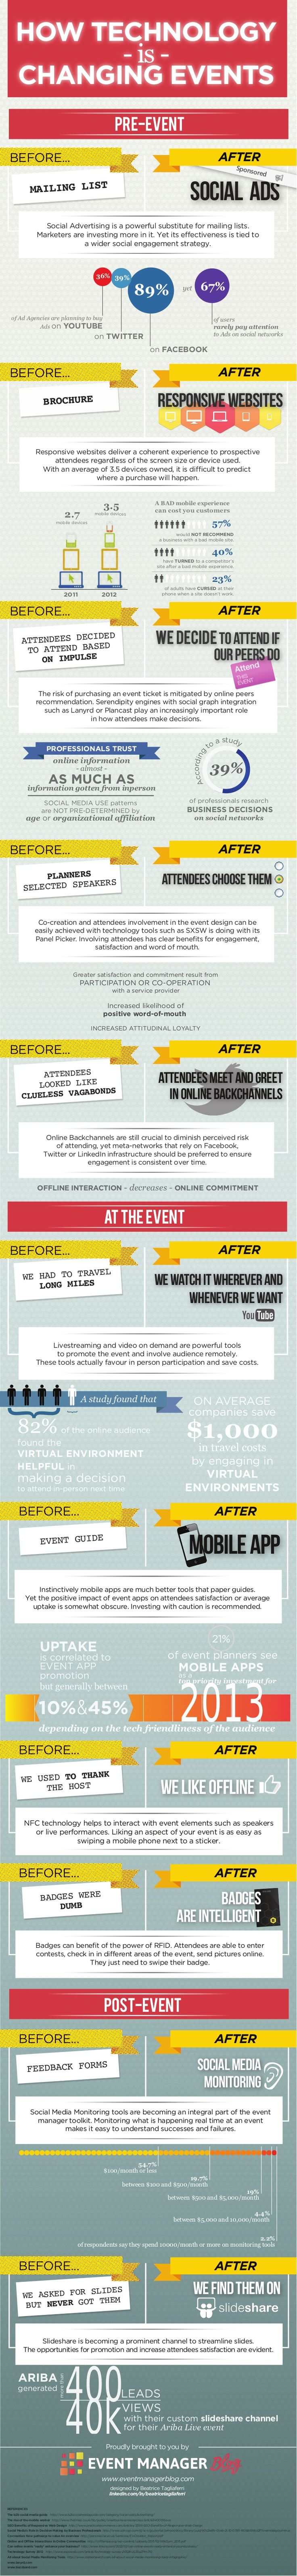 Event Technology Infographic by Julius Solaris via